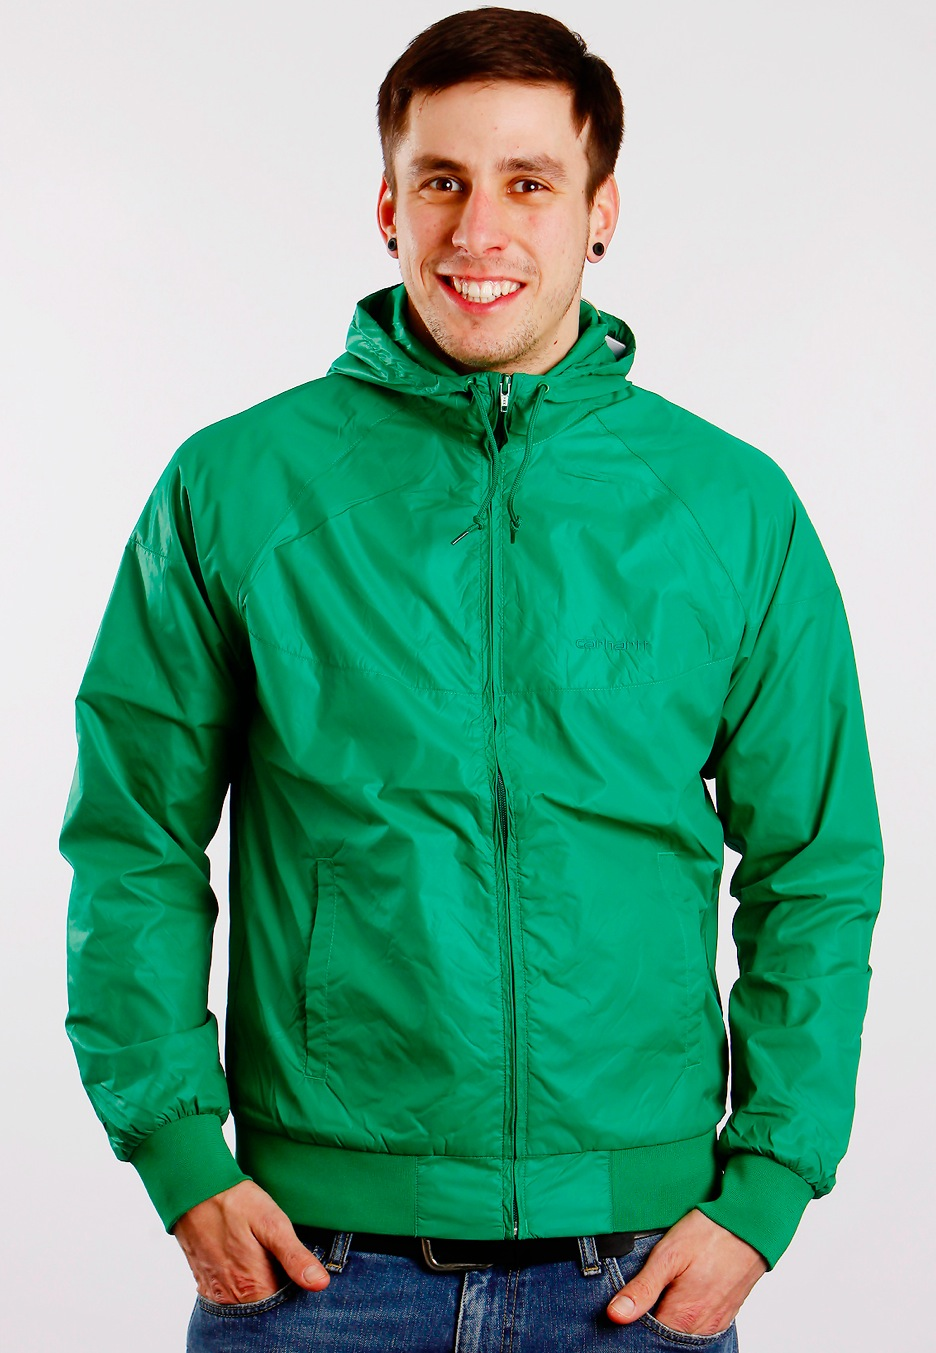 Carhartt WIP - Grizz Green - Jacket - Streetwear Shop - Impericon ...